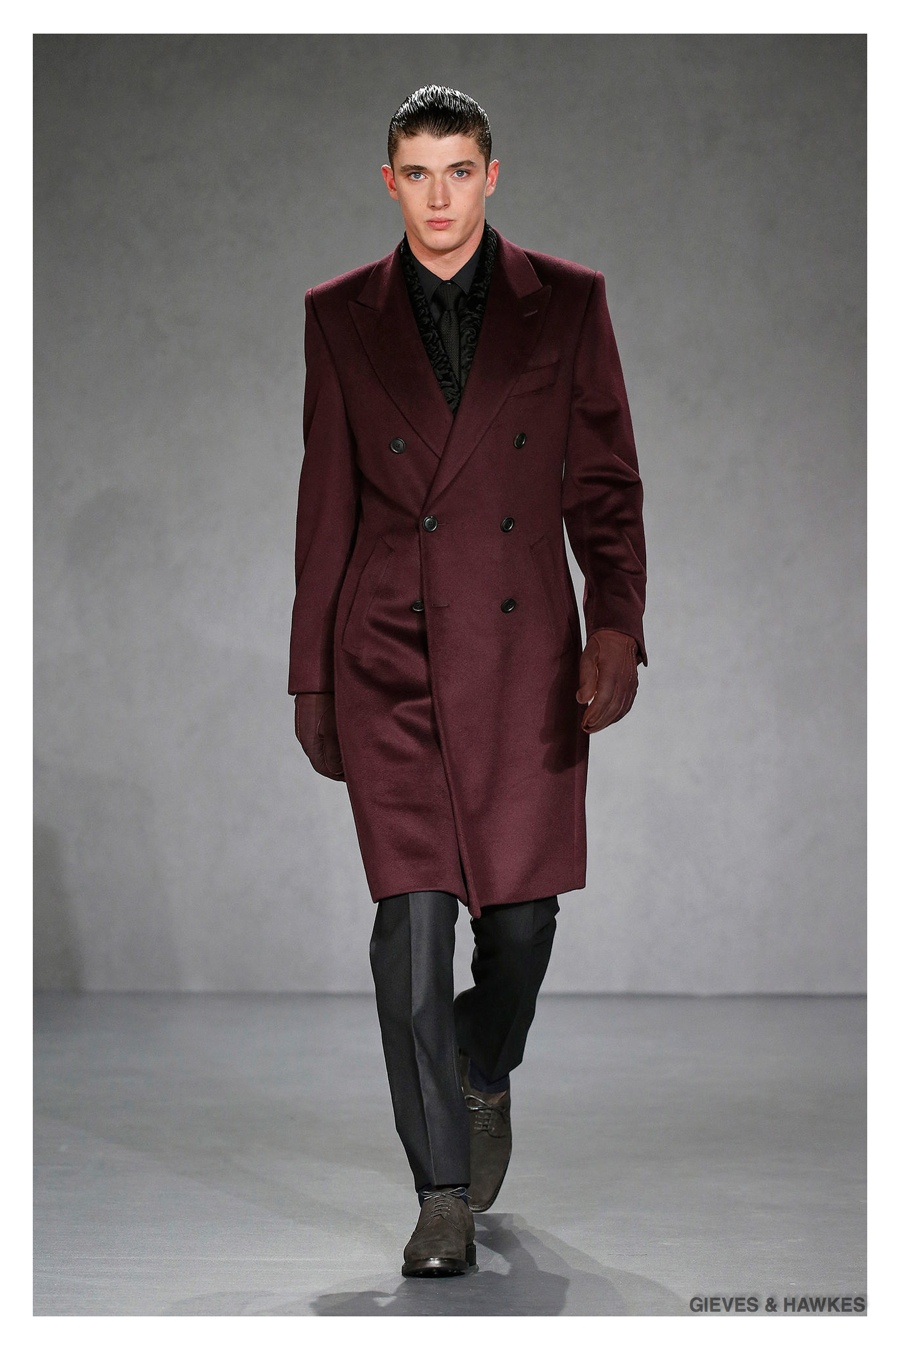 Gieves & Hawkes Showcases Rich Fall Colors for Sartorial Fall/Winter 2015 Menswear Collection